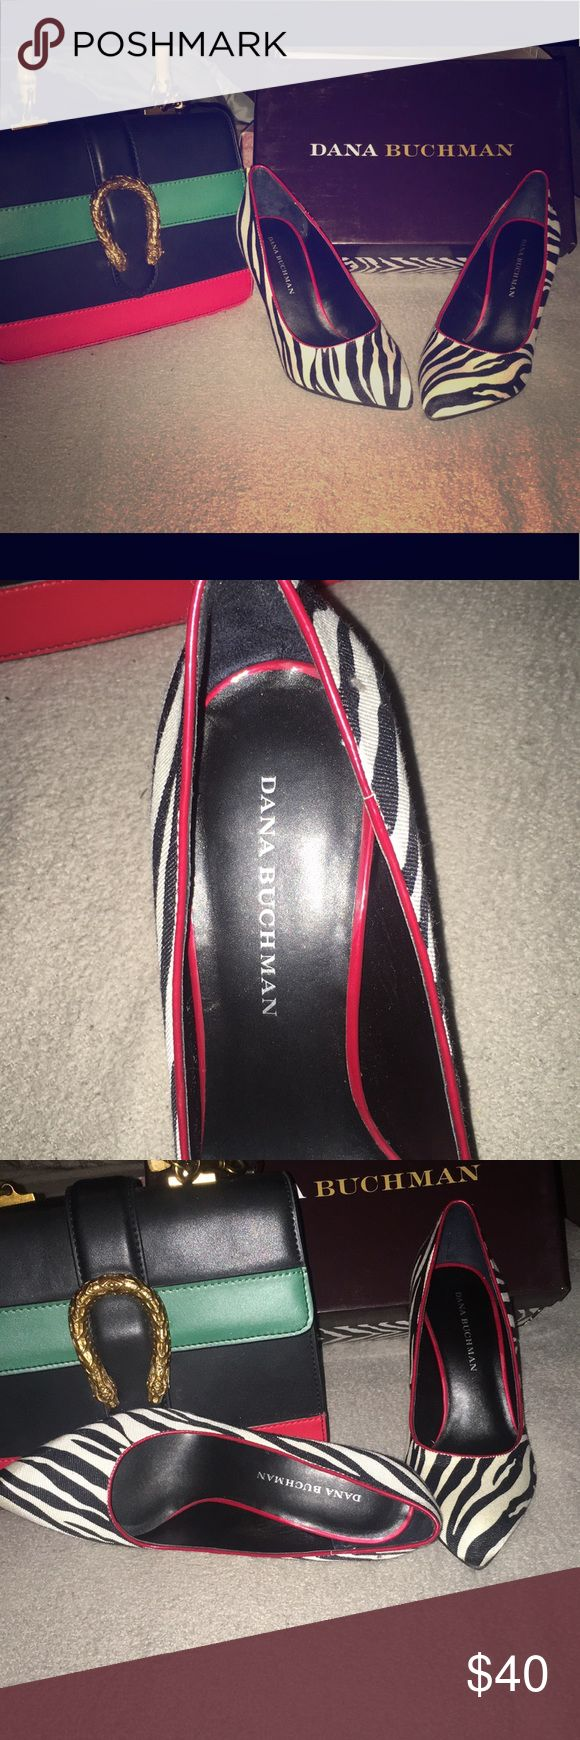 Dana Buchman Katerina Zebra Heels For all you animal print lovers out there you guys will love these cute never worn Dana Buchman Katerina Zebra Heels.  New still in box Size 7.5 Smoke free home Dana Buchman Shoes Heels